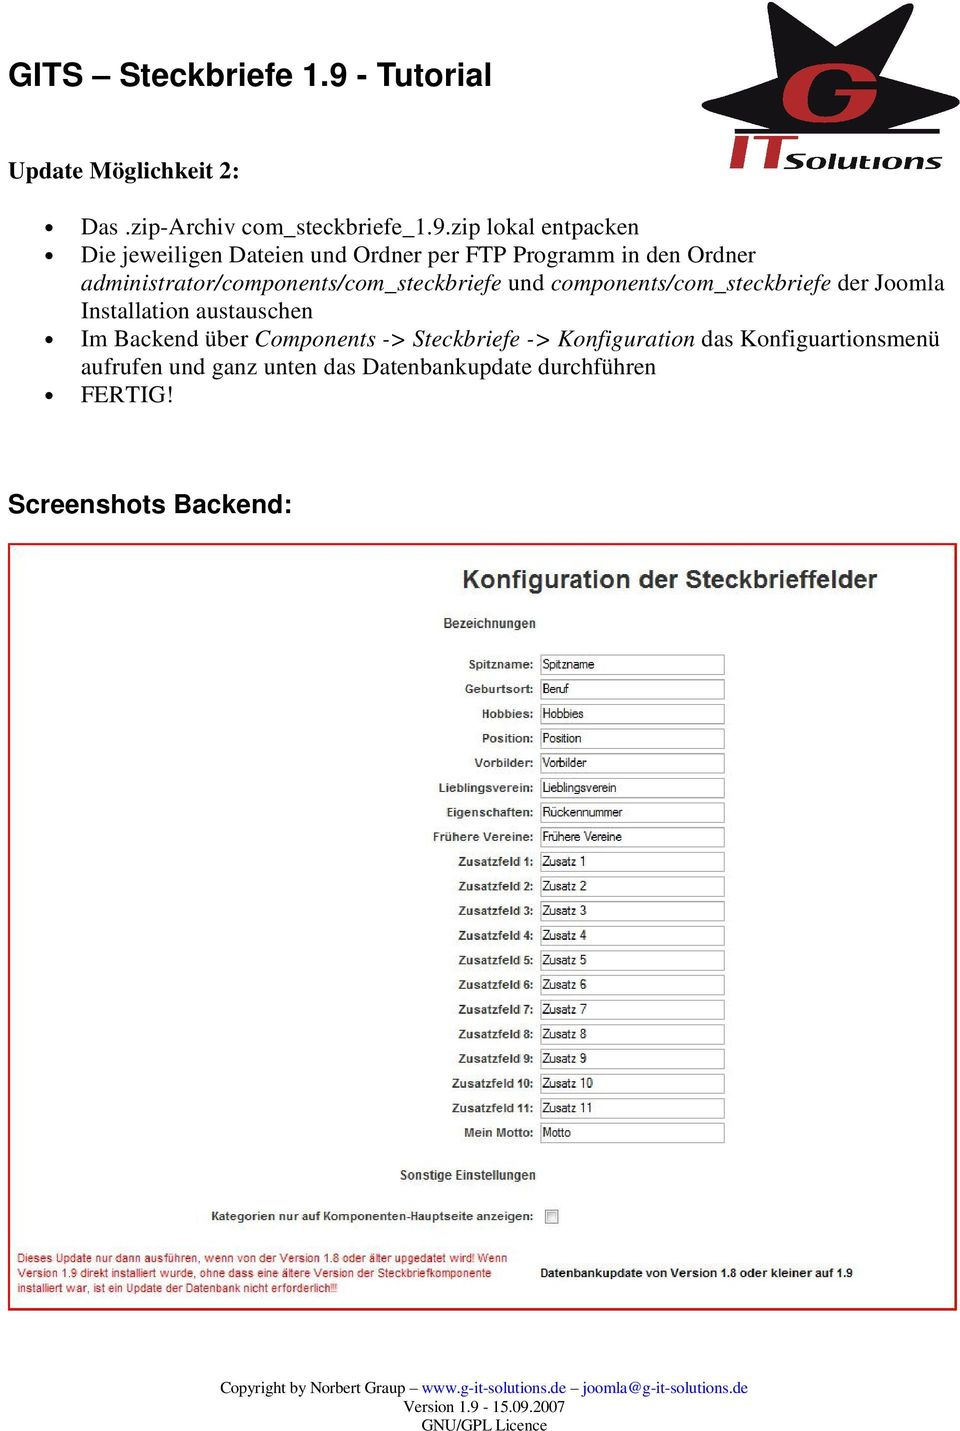 administrator/components/com_steckbriefe und components/com_steckbriefe der Joomla Installation